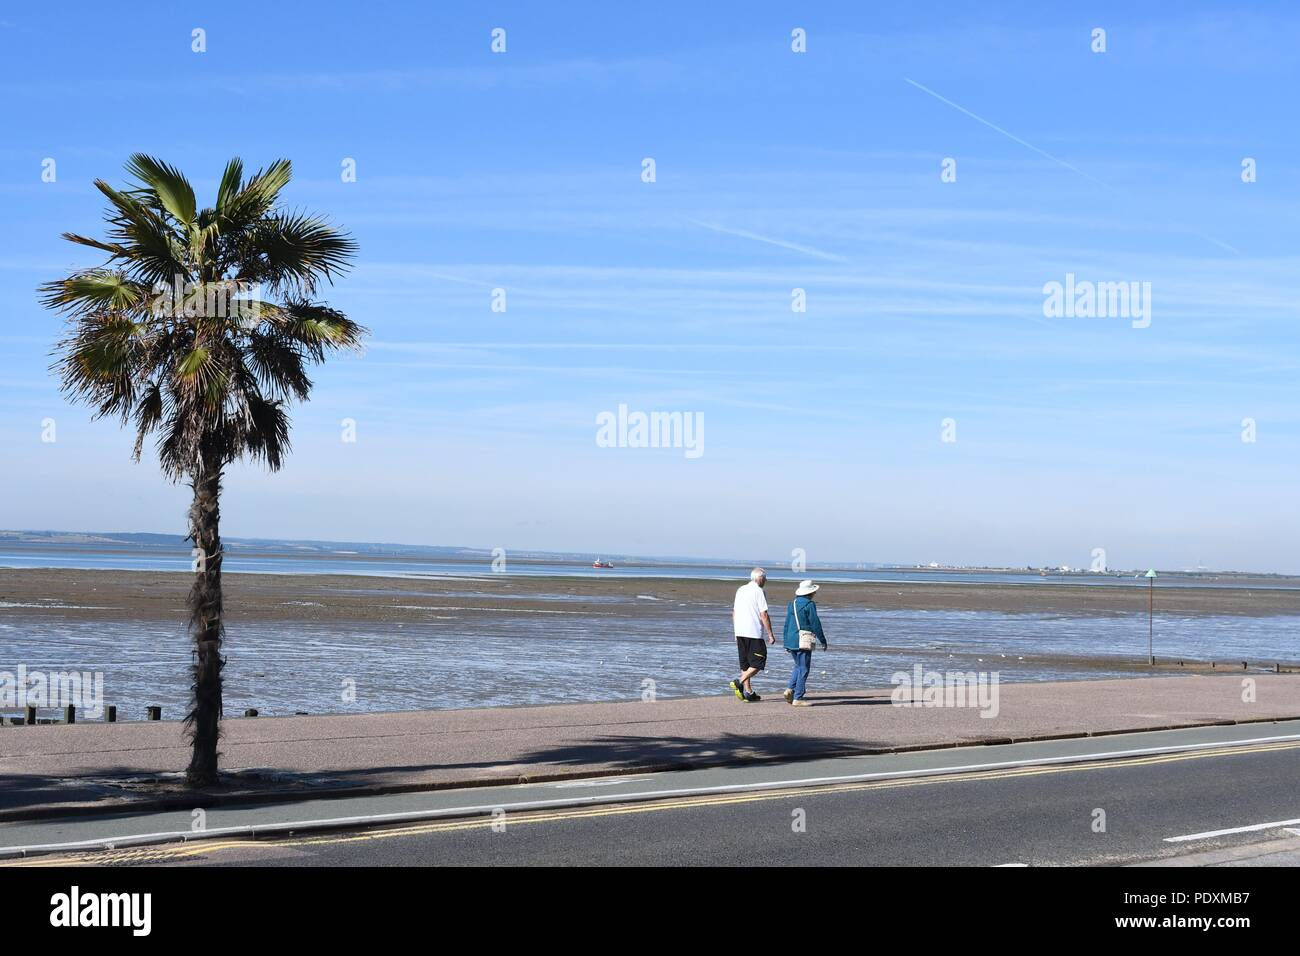 Southend-on-Sea, Essex, UK. 11th August, 2018. UK Weather: A warm start to the day in Southend - a view of people walking along the sea front Credit: Ben Rector/Alamy Live News Stock Photo